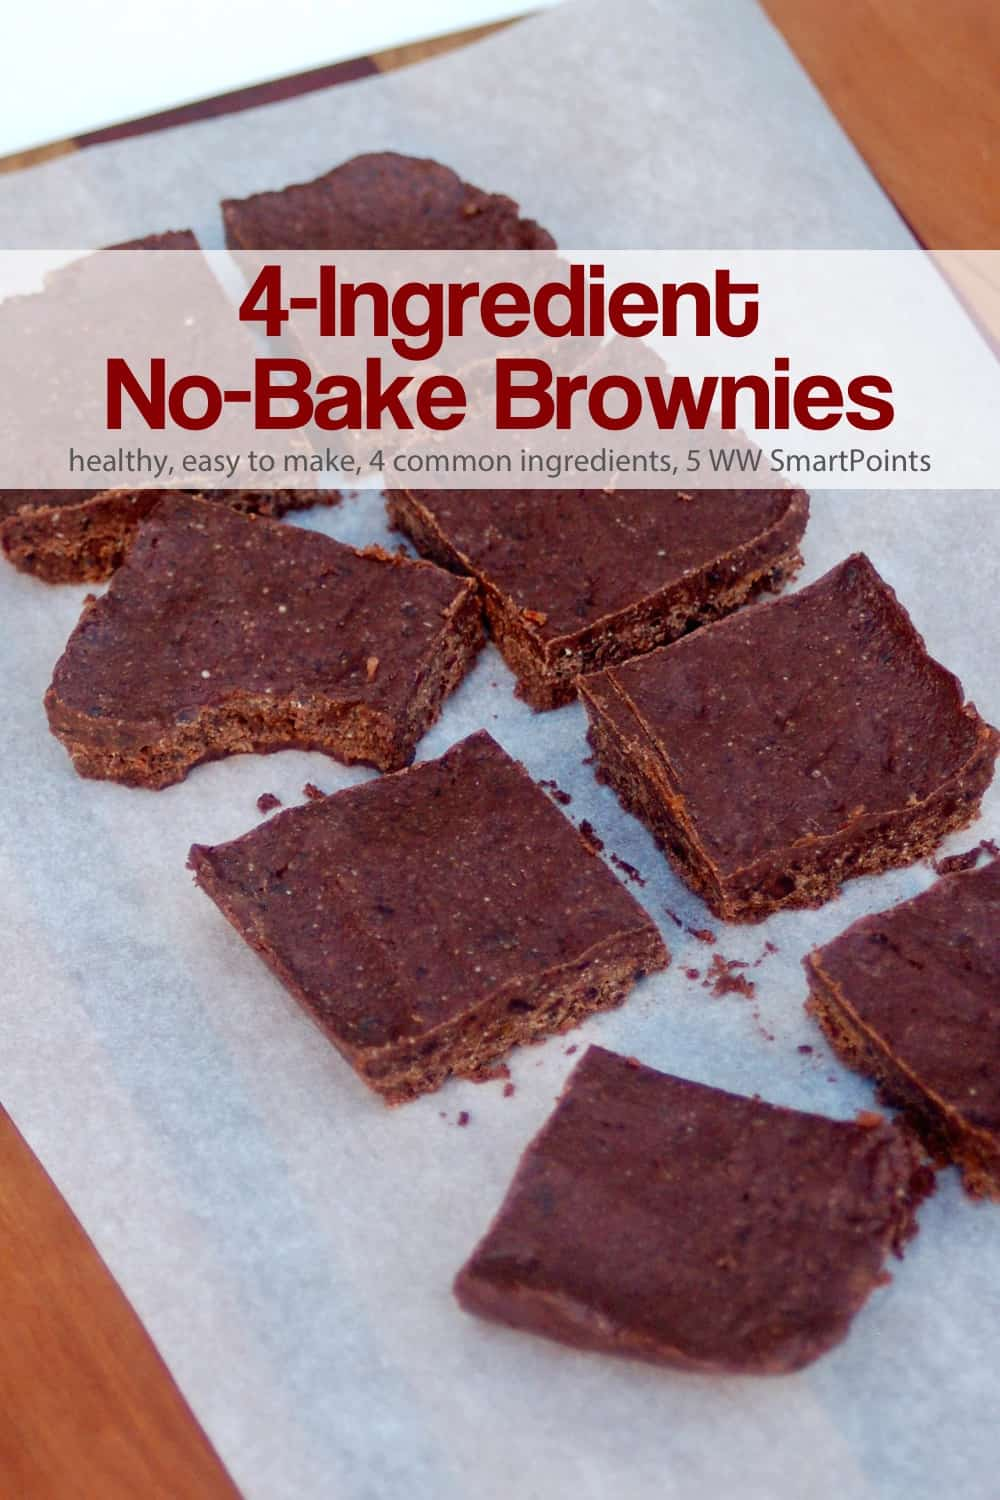 The flavor and texture of these gluten-free, 4-ingredient, no-bake brownies reminded me of a homemade chocolate Larabar. Each brownie has about 135 calories and 5 Weight Watchers Freestyle SmartPoints! #nobakebrownies #4ingredientbrownies #dessert #nobakedessert